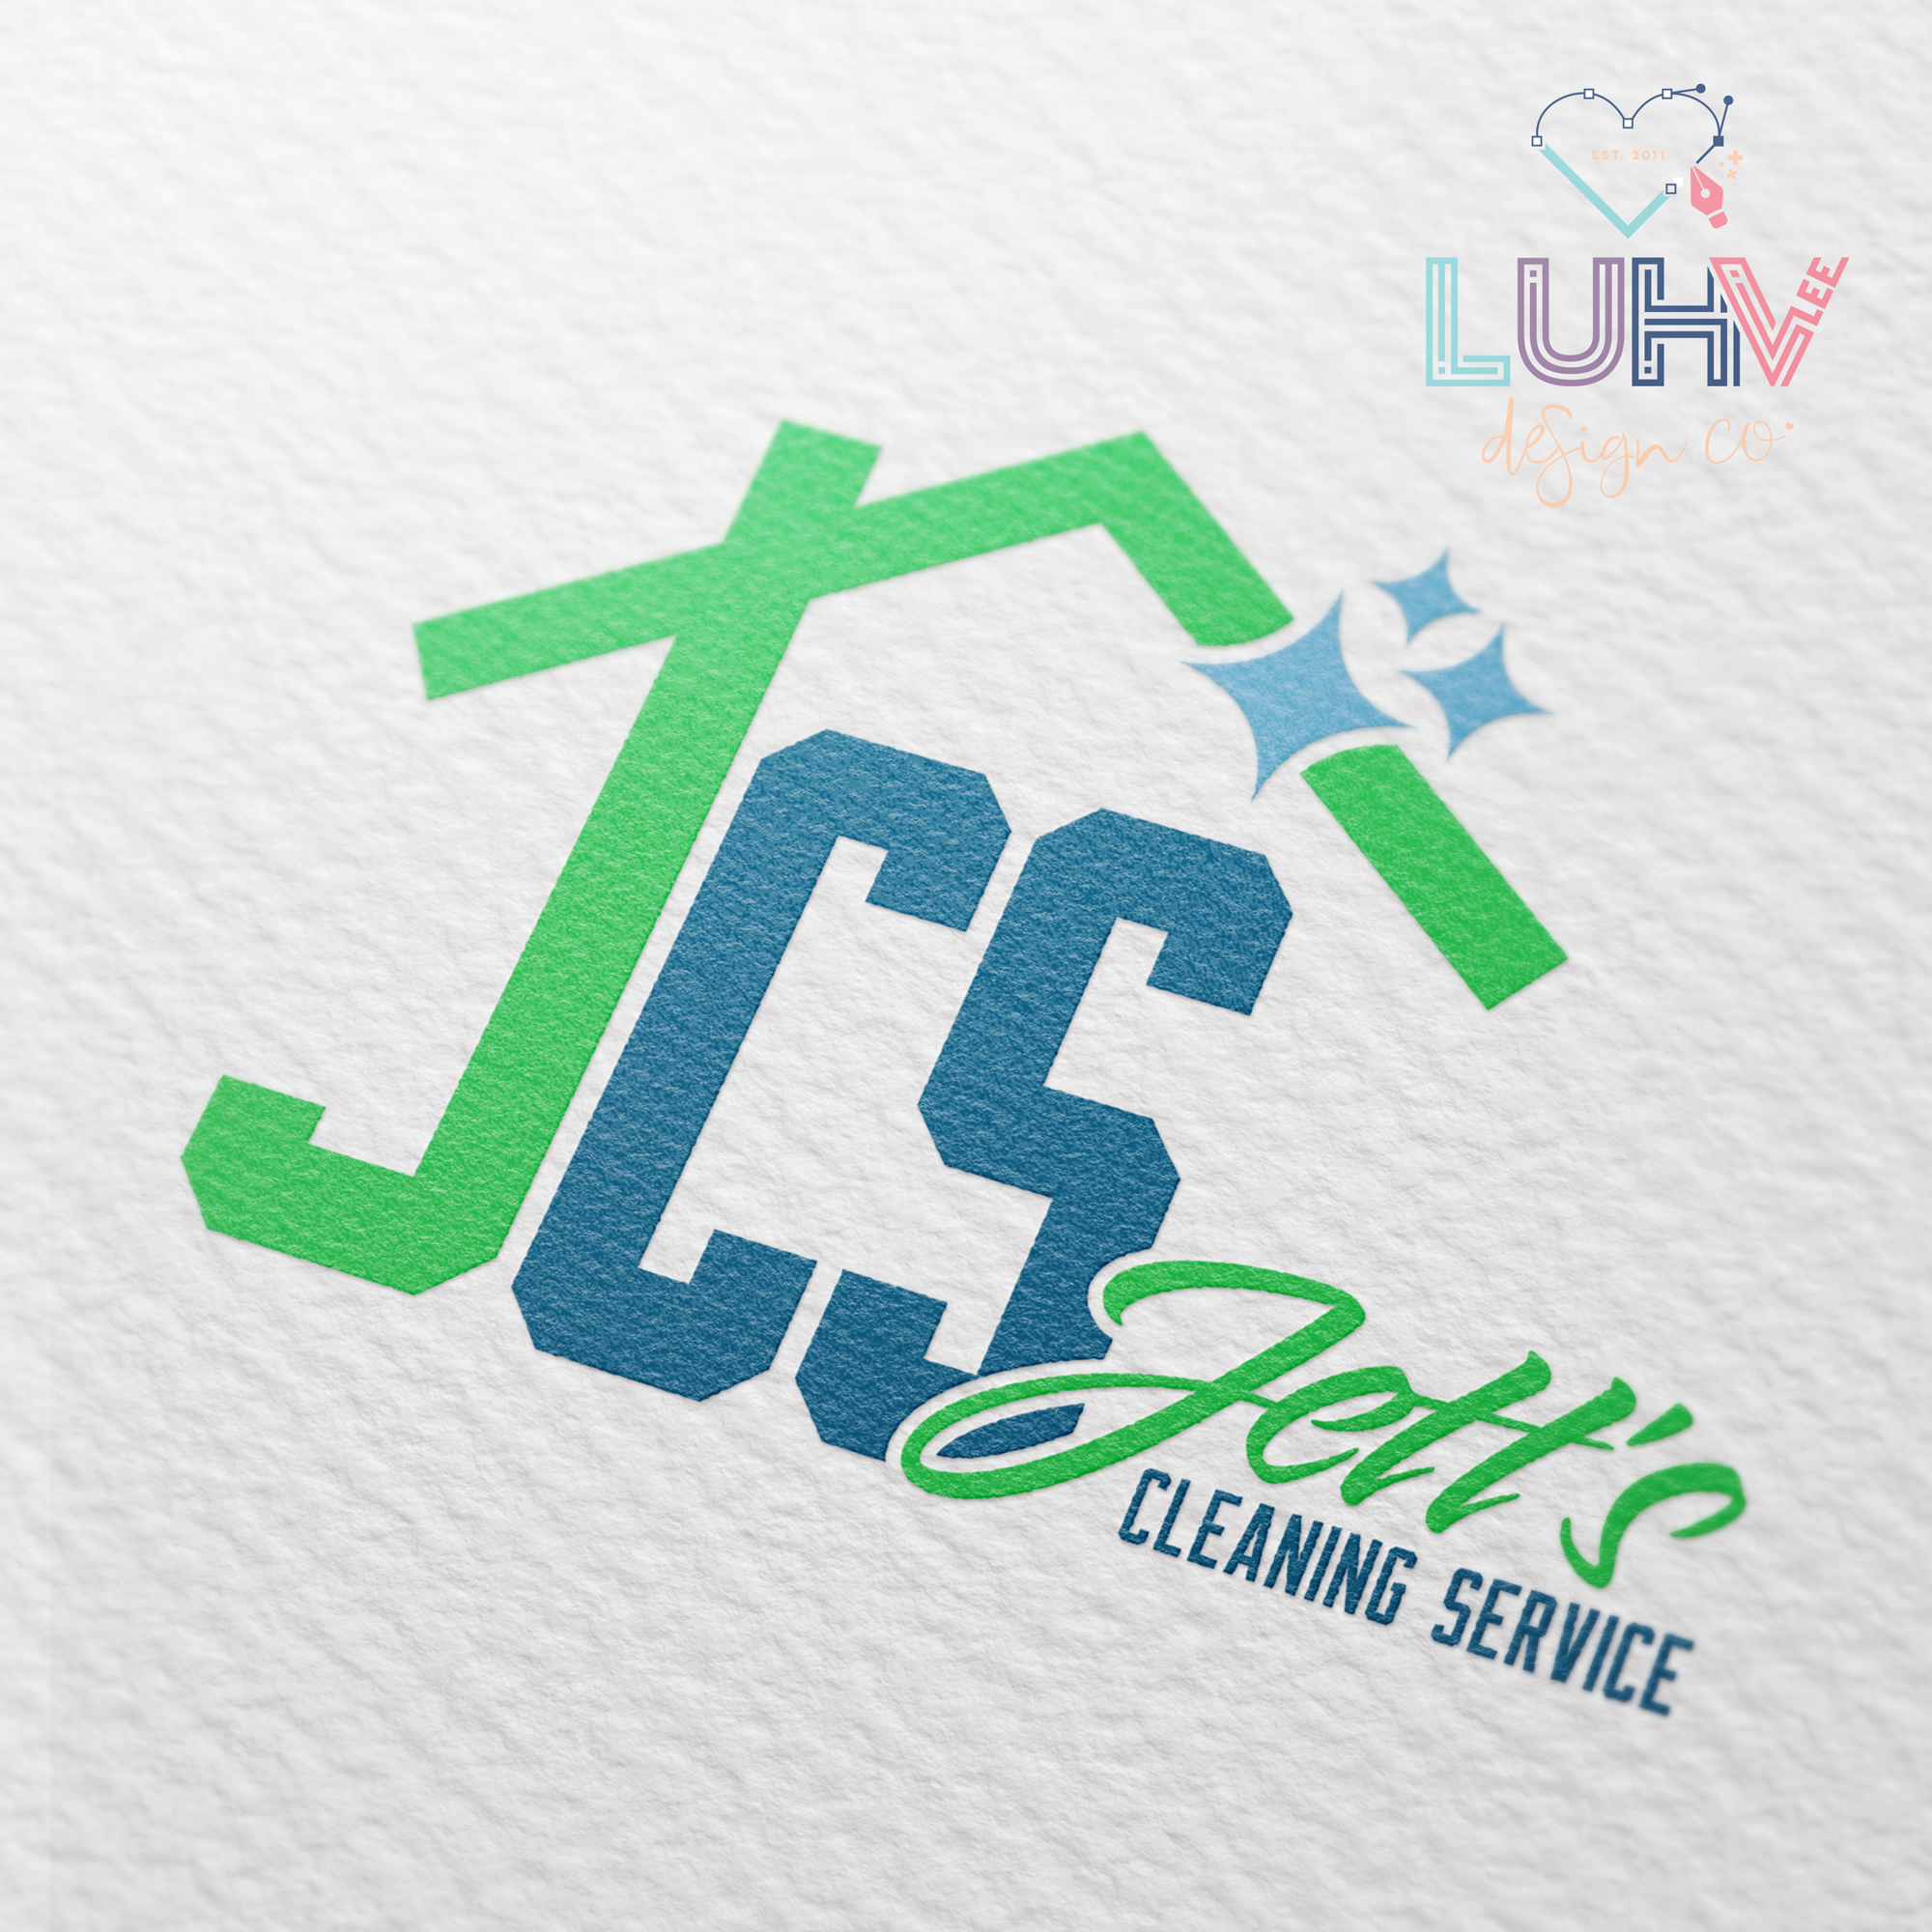 Jett's Cleaning Service Logo Design